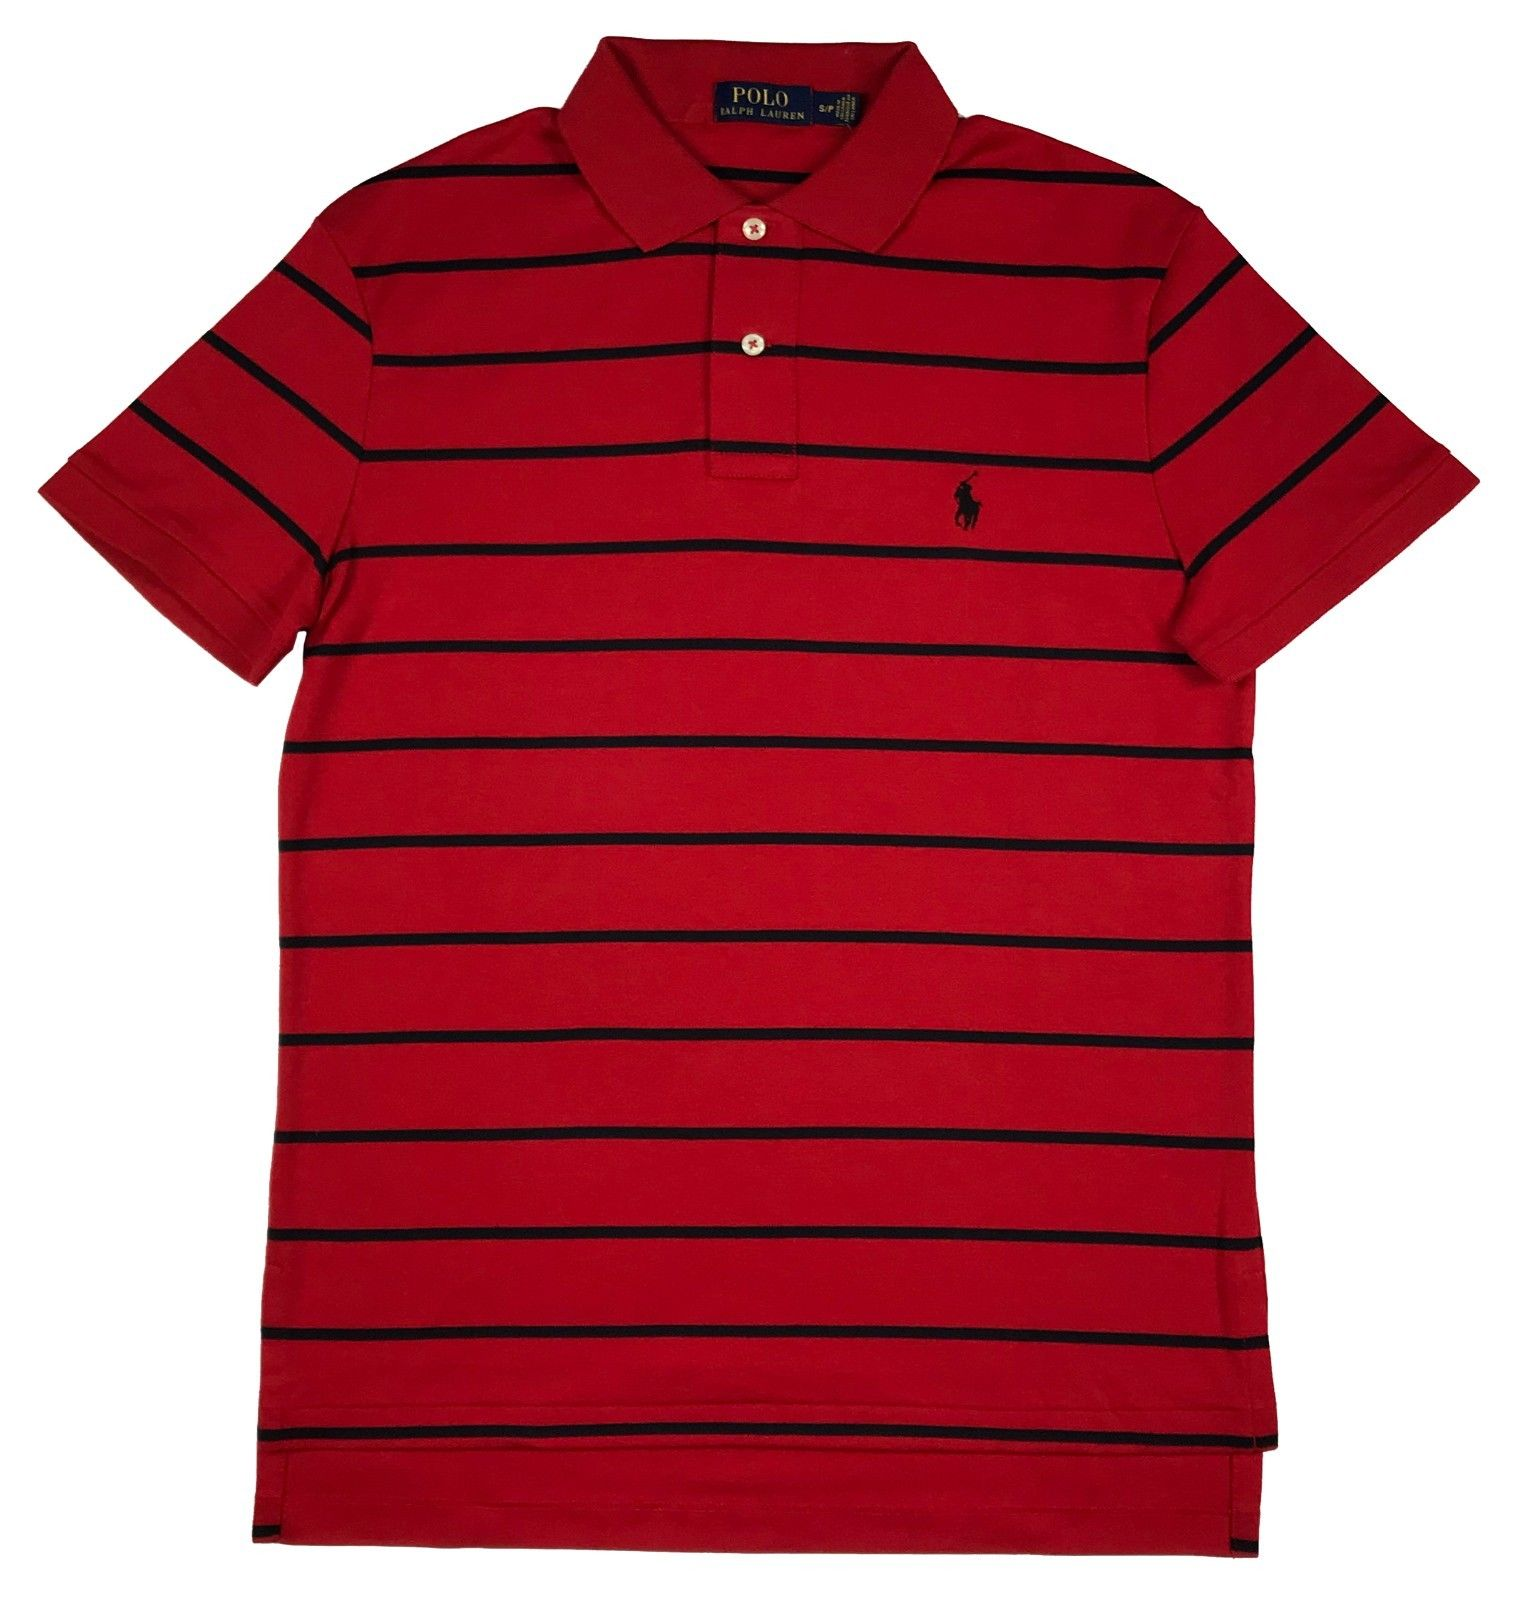 Ralph Lauren Polo Mens Soft Touch Striped Pony Logo Shirt White/Navy/Red/